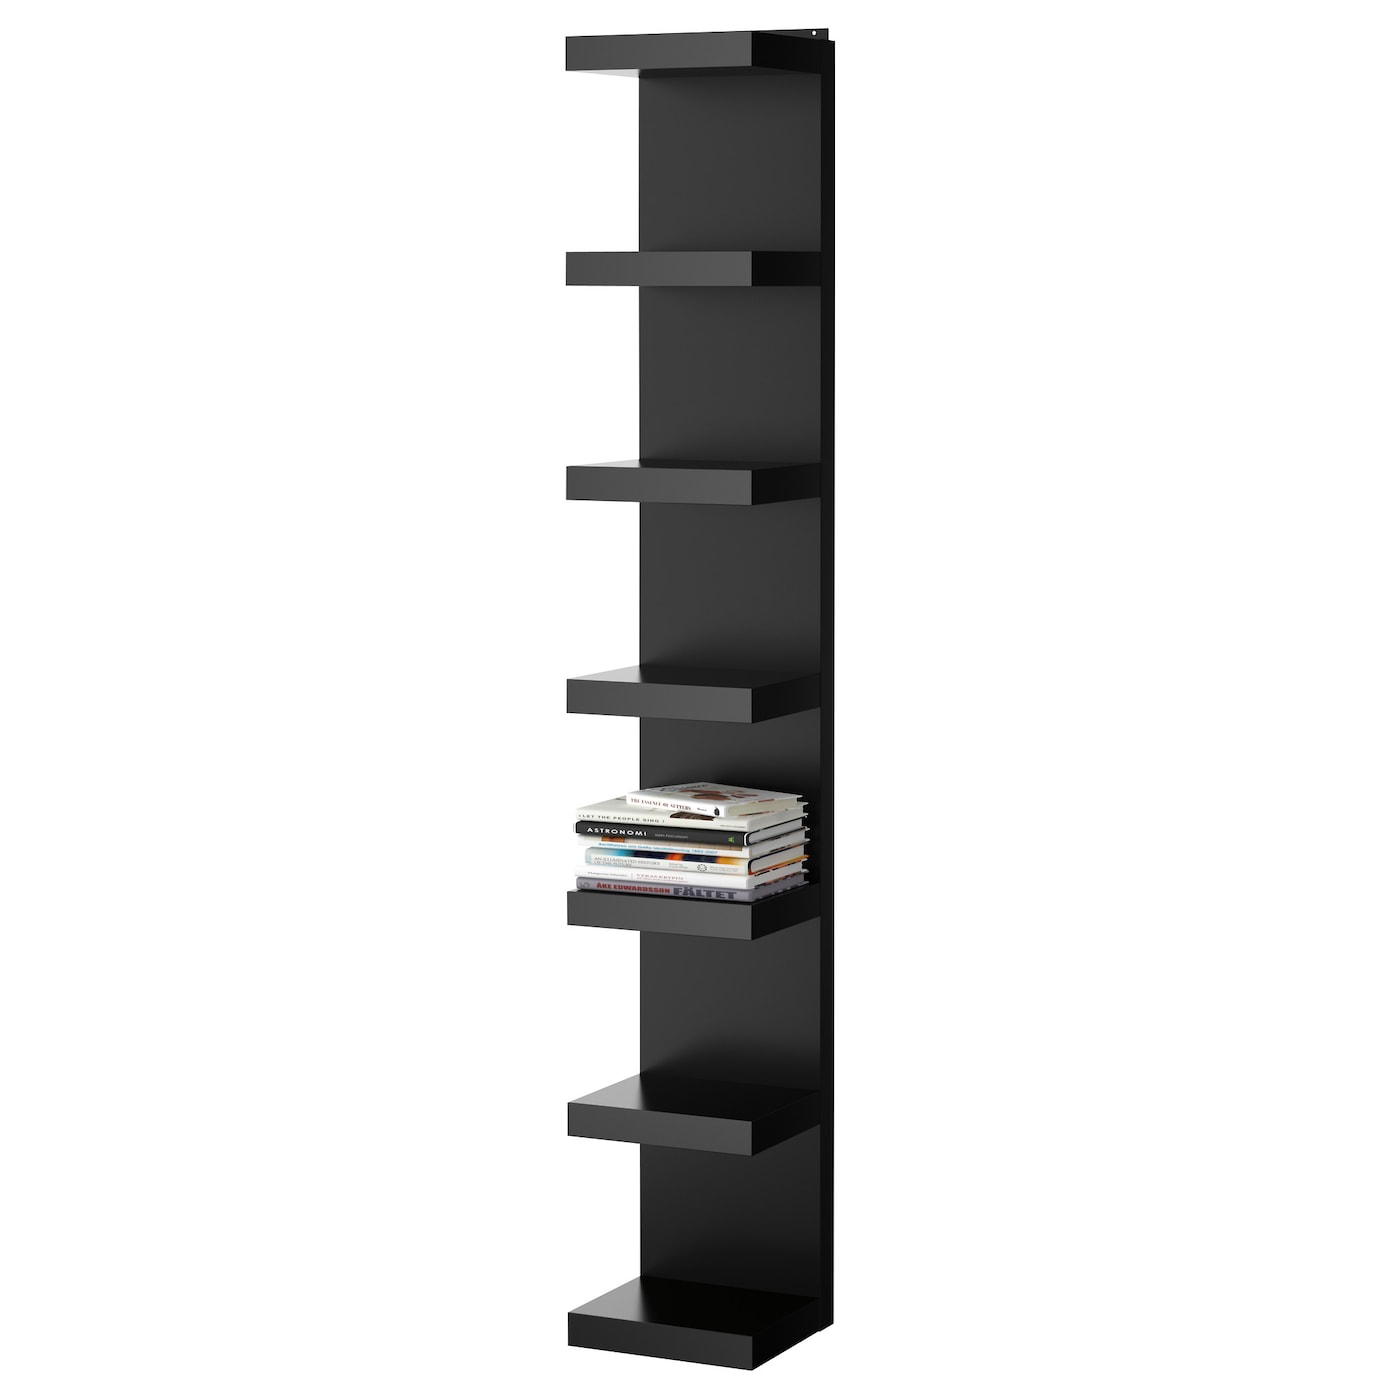 Lack wall shelf unit black 30x190 cm ikea for Etagere 50 cm de large